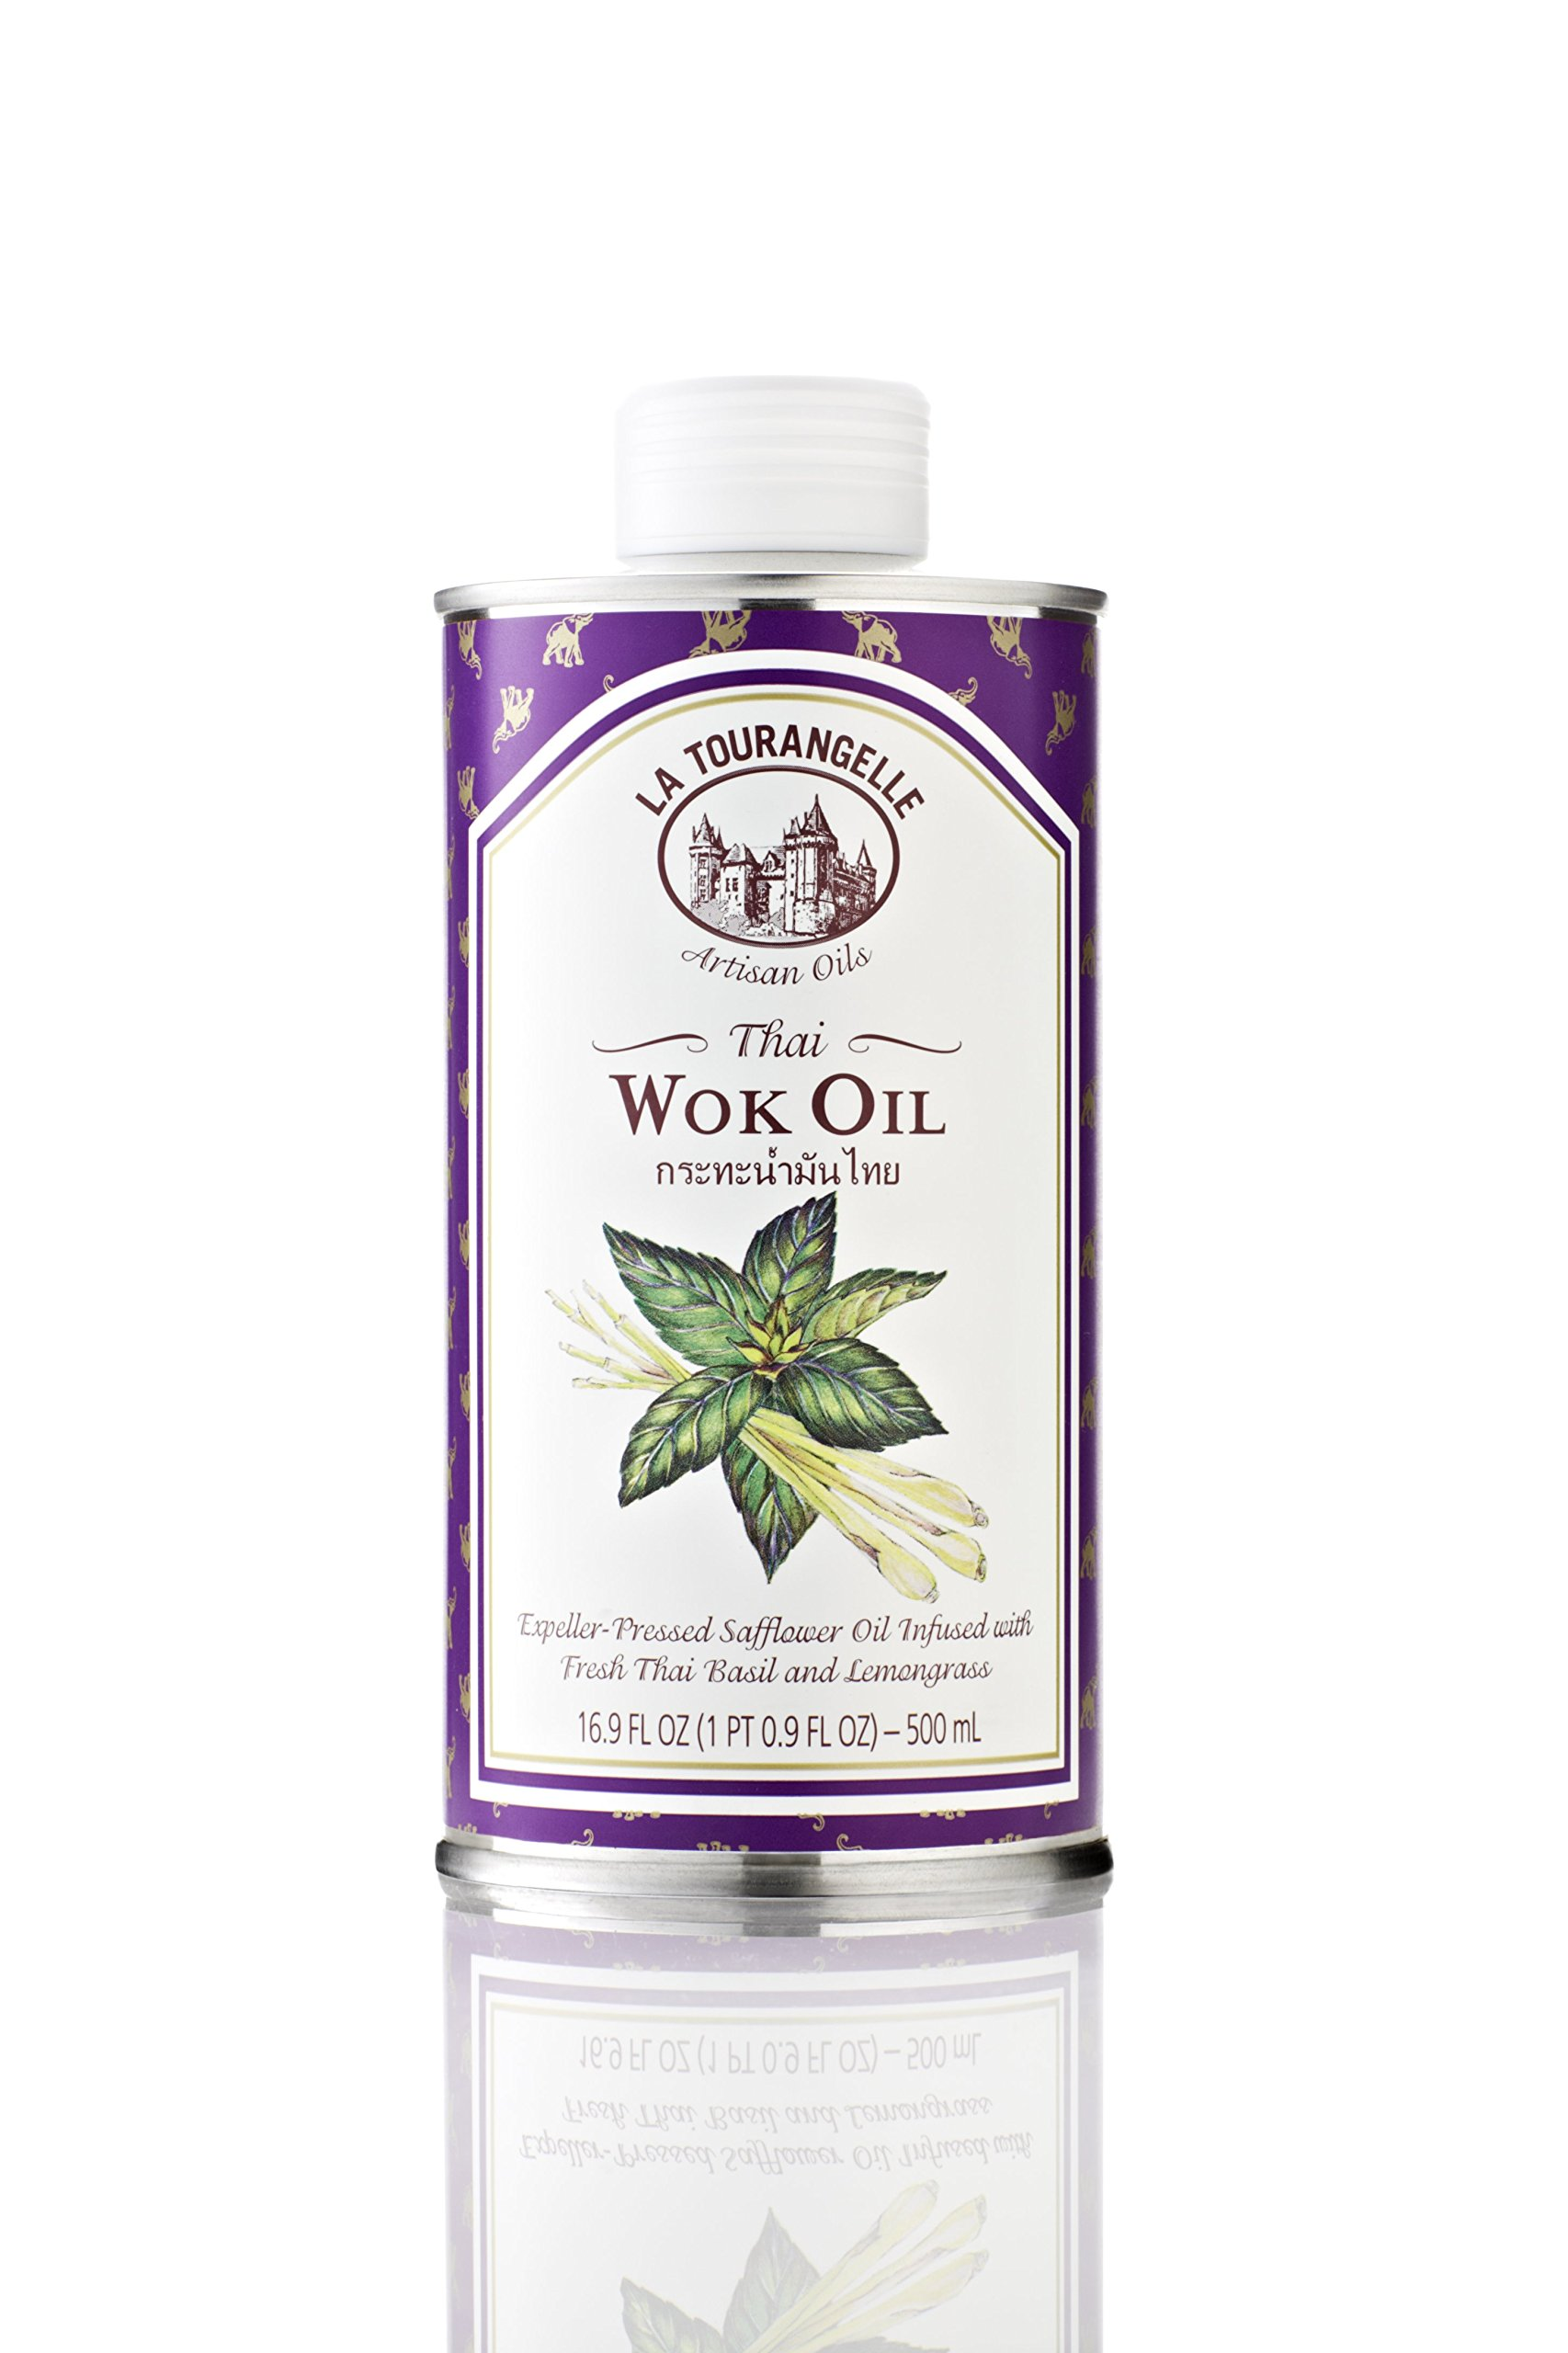 La Tourangelle Thai Wok Oil 16.9 Fl. Oz, Thai Basil and Lemongrass Infused Safflower Oil, Great for Stir-fry or Thai-Style Curry